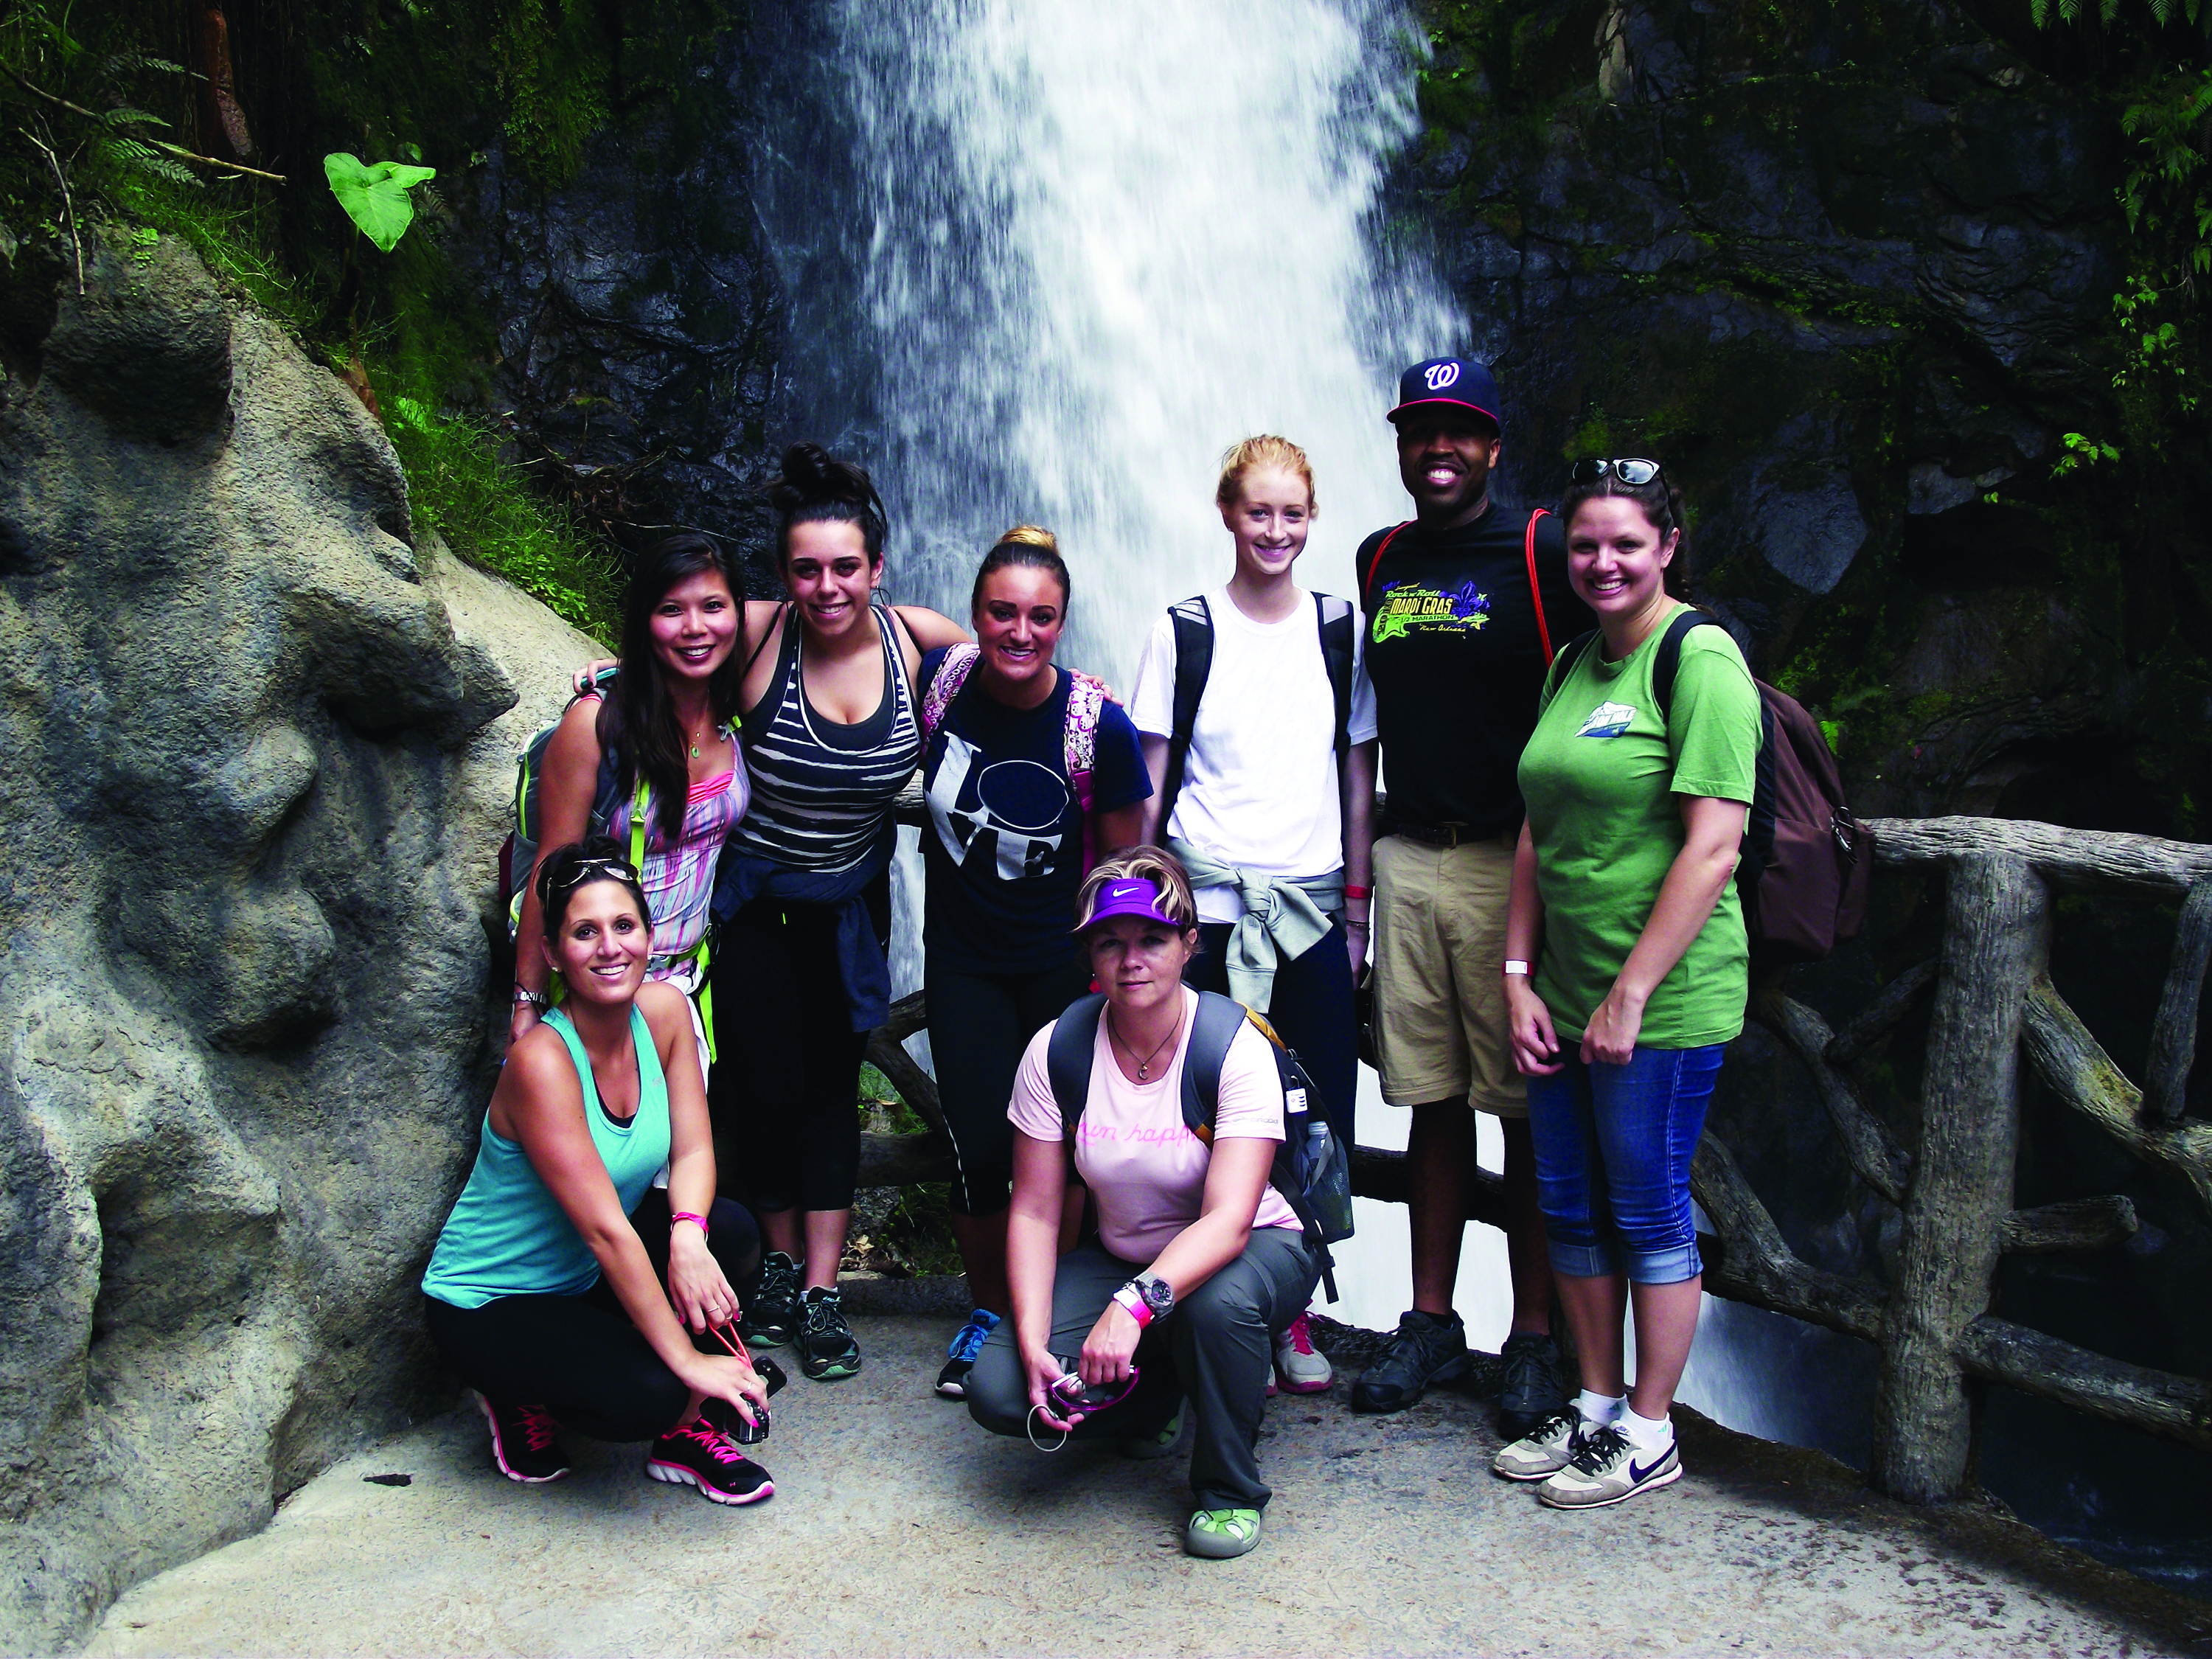 A group of people posing in front of a waterfall